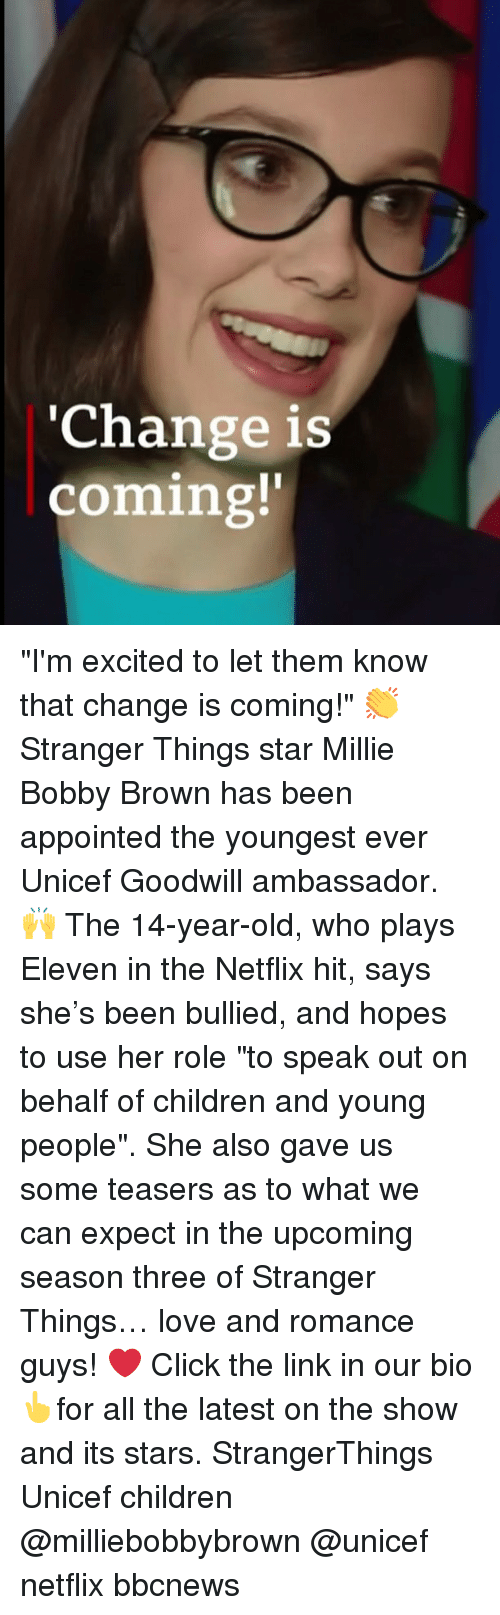 "Bobby Brown: 'Change is  coming!' ""I'm excited to let them know that change is coming!"" 👏 Stranger Things star Millie Bobby Brown has been appointed the youngest ever Unicef Goodwill ambassador. 🙌 The 14-year-old, who plays Eleven in the Netflix hit, says she's been bullied, and hopes to use her role ""to speak out on behalf of children and young people"". She also gave us some teasers as to what we can expect in the upcoming season three of Stranger Things… love and romance guys! ❤️ Click the link in our bio👆for all the latest on the show and its stars. StrangerThings Unicef children @milliebobbybrown @unicef netflix bbcnews"